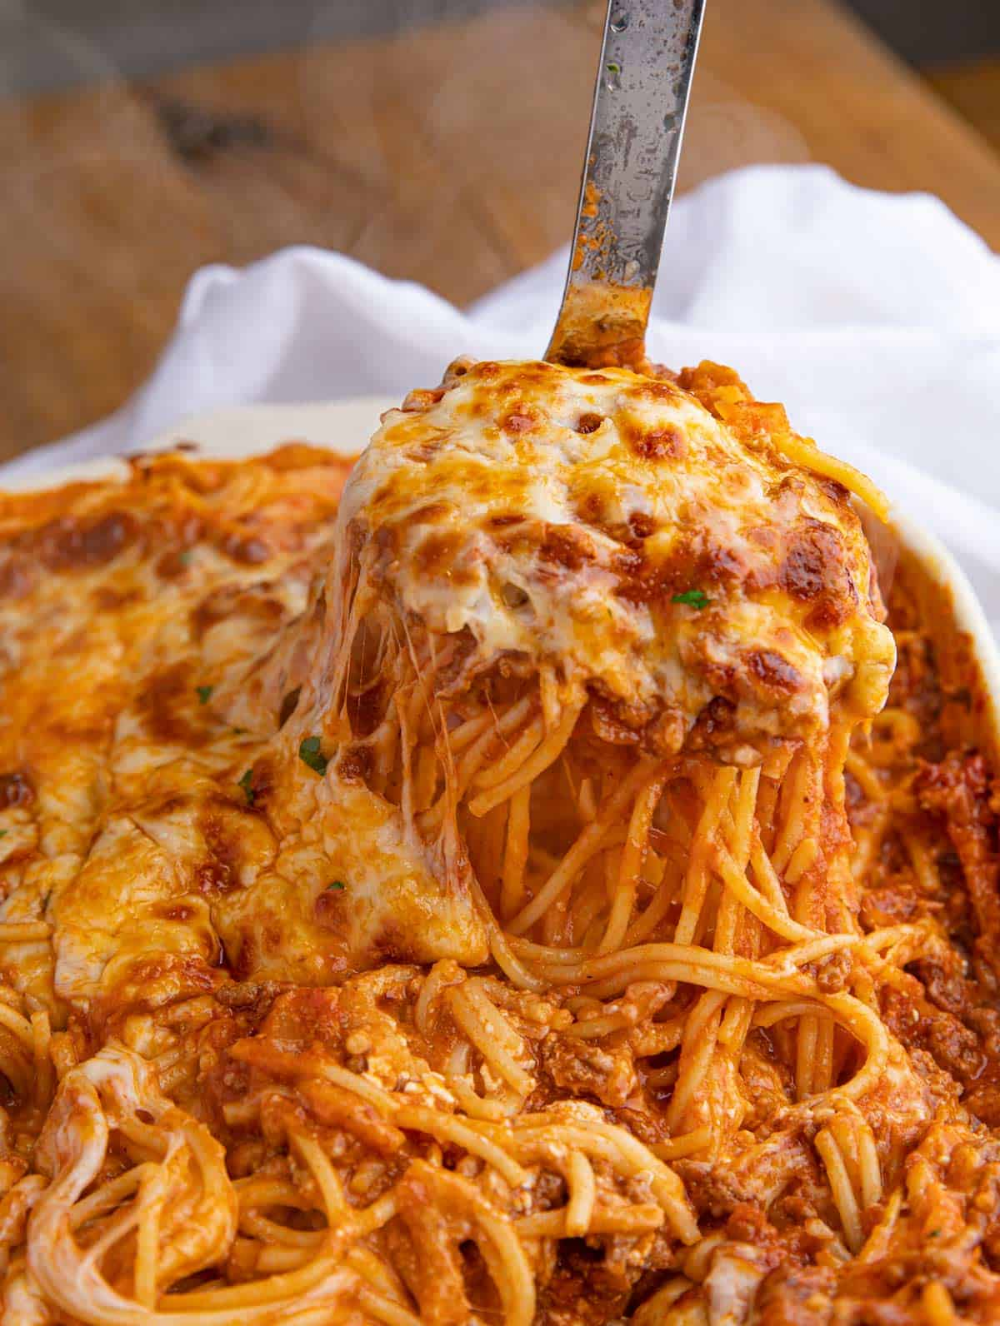 Easy Cheesy Beef Baked Spaghetti That S Kid Friendly Pasta Beef Groundbeef Cheesy Cheese D In 2020 Spaghetti Recipes Easy Baked Spaghetti Baked Spaghetti Recipe